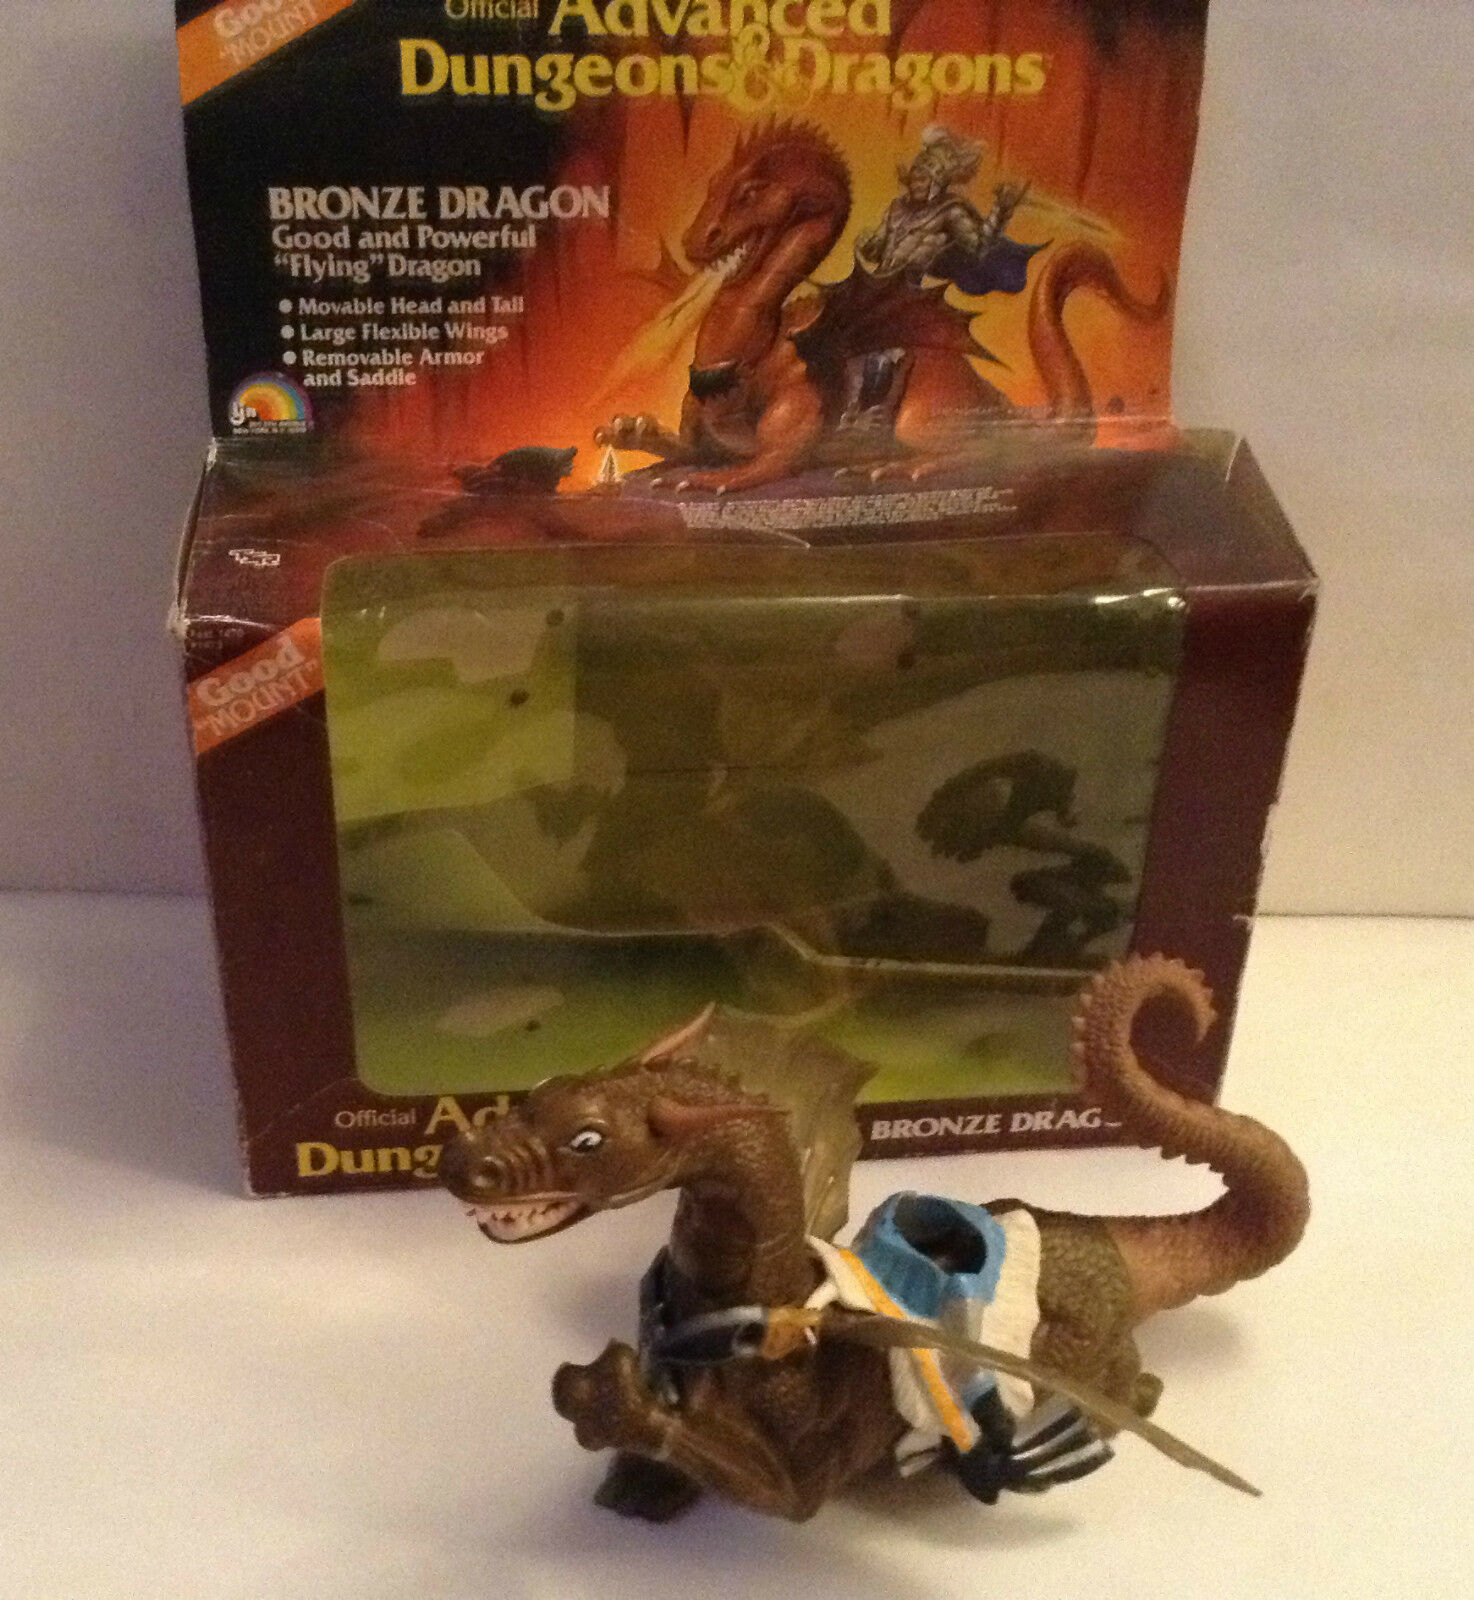 Bronzo Dragon Advanced Dungeons and Dragons ACTION FIGURES LJN 1983 in scatola ADV